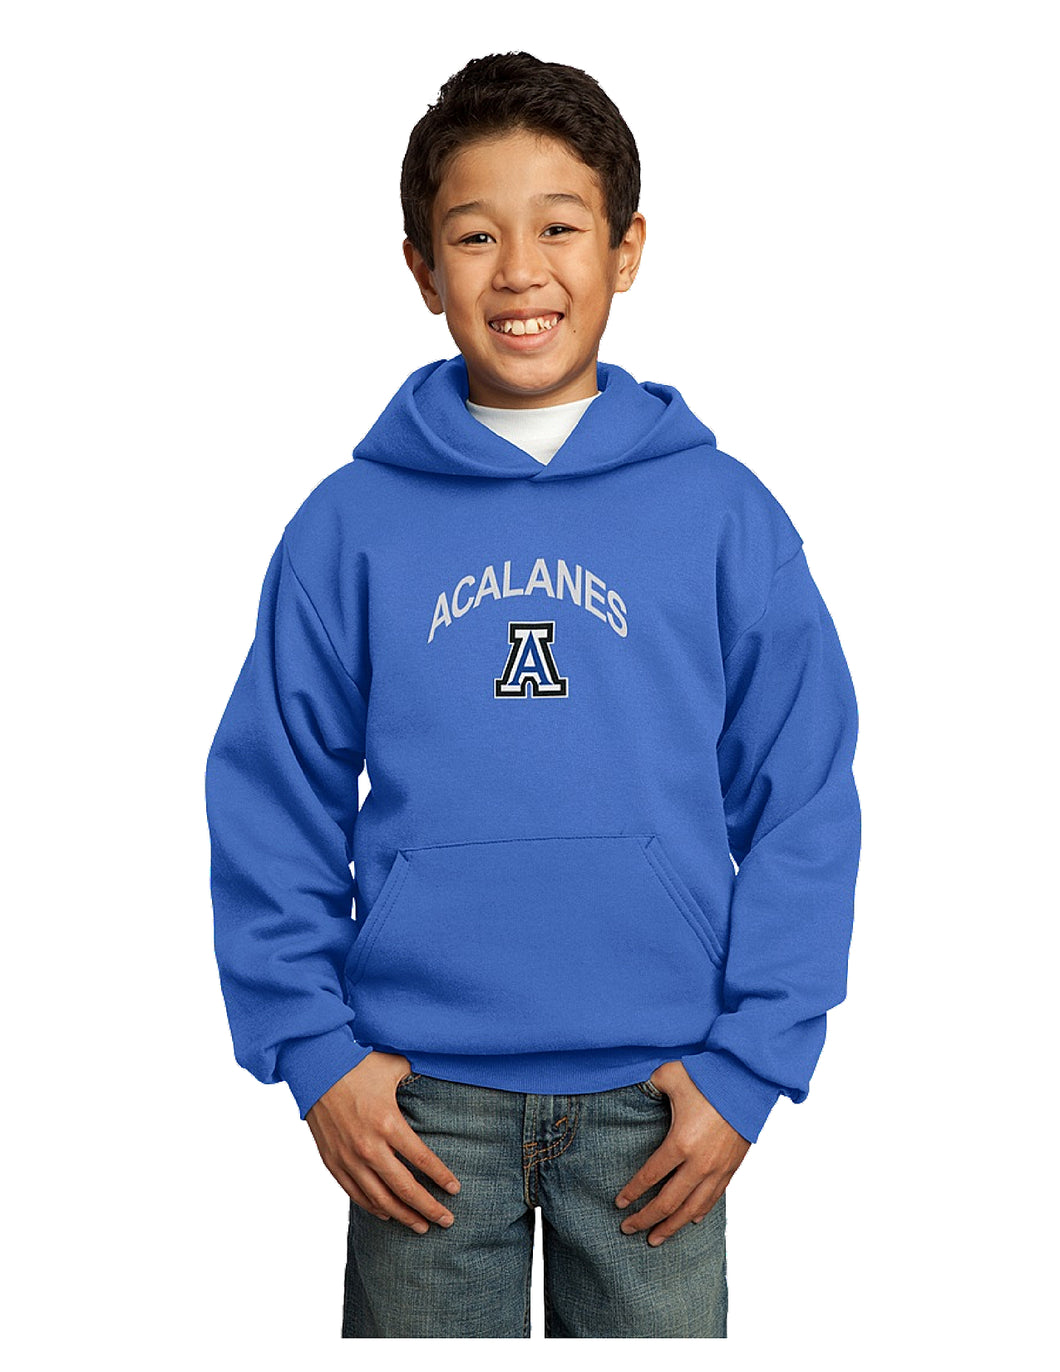 Port & Company® - Youth Core Fleece Pullover Hooded Sweatshirt Royal with Screen Printed Big Acalanes